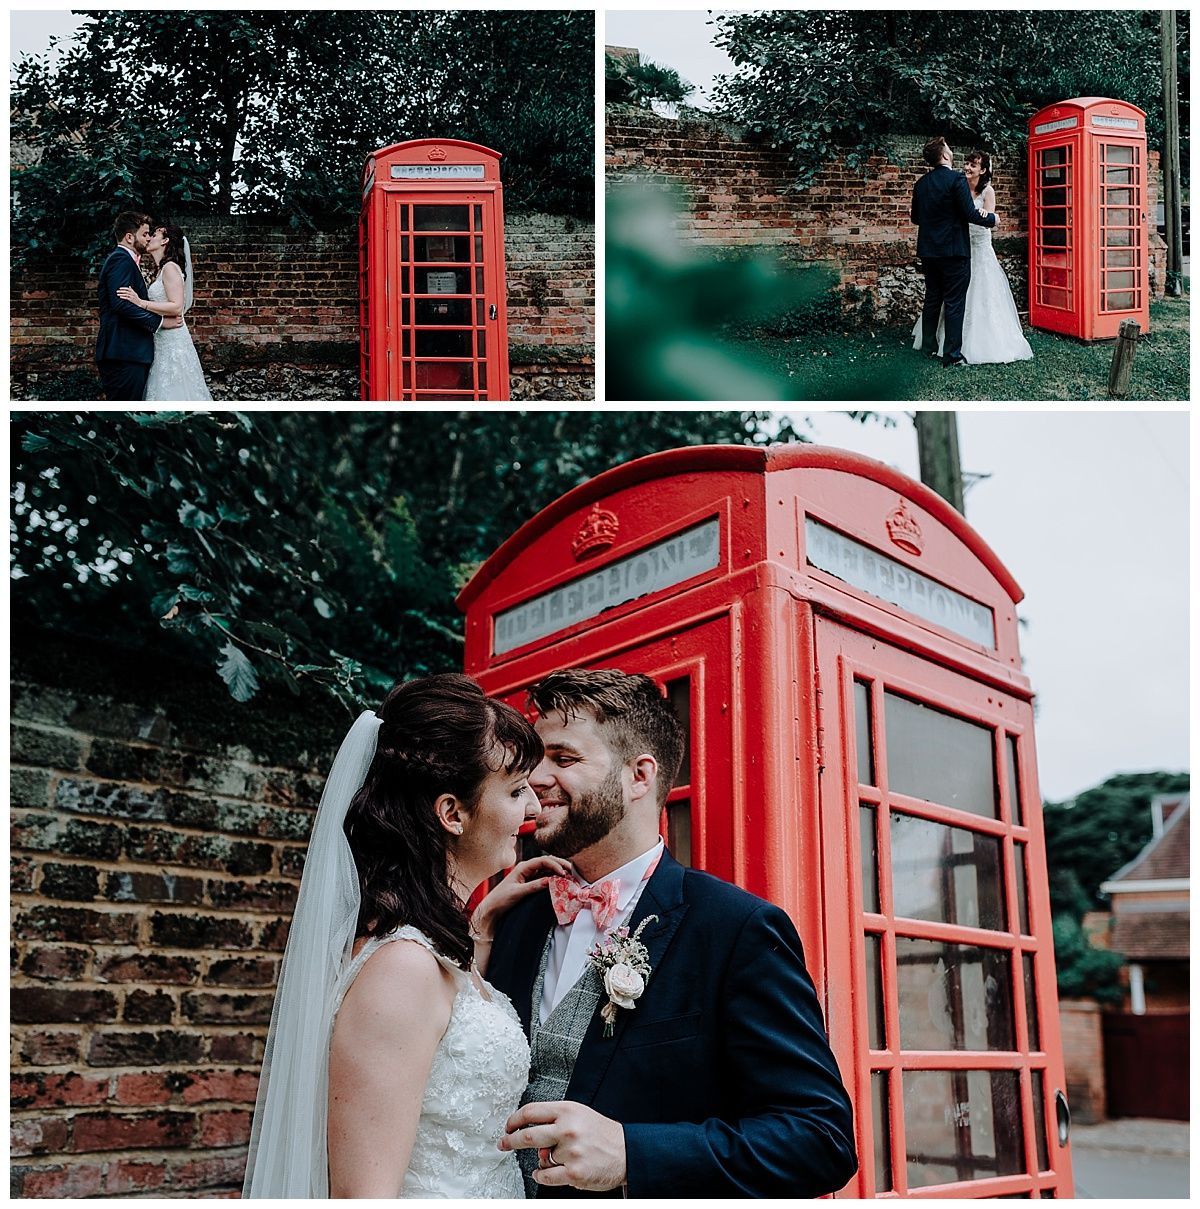 Holly and Greg outside red phonebox on their wedding day in Berkshire